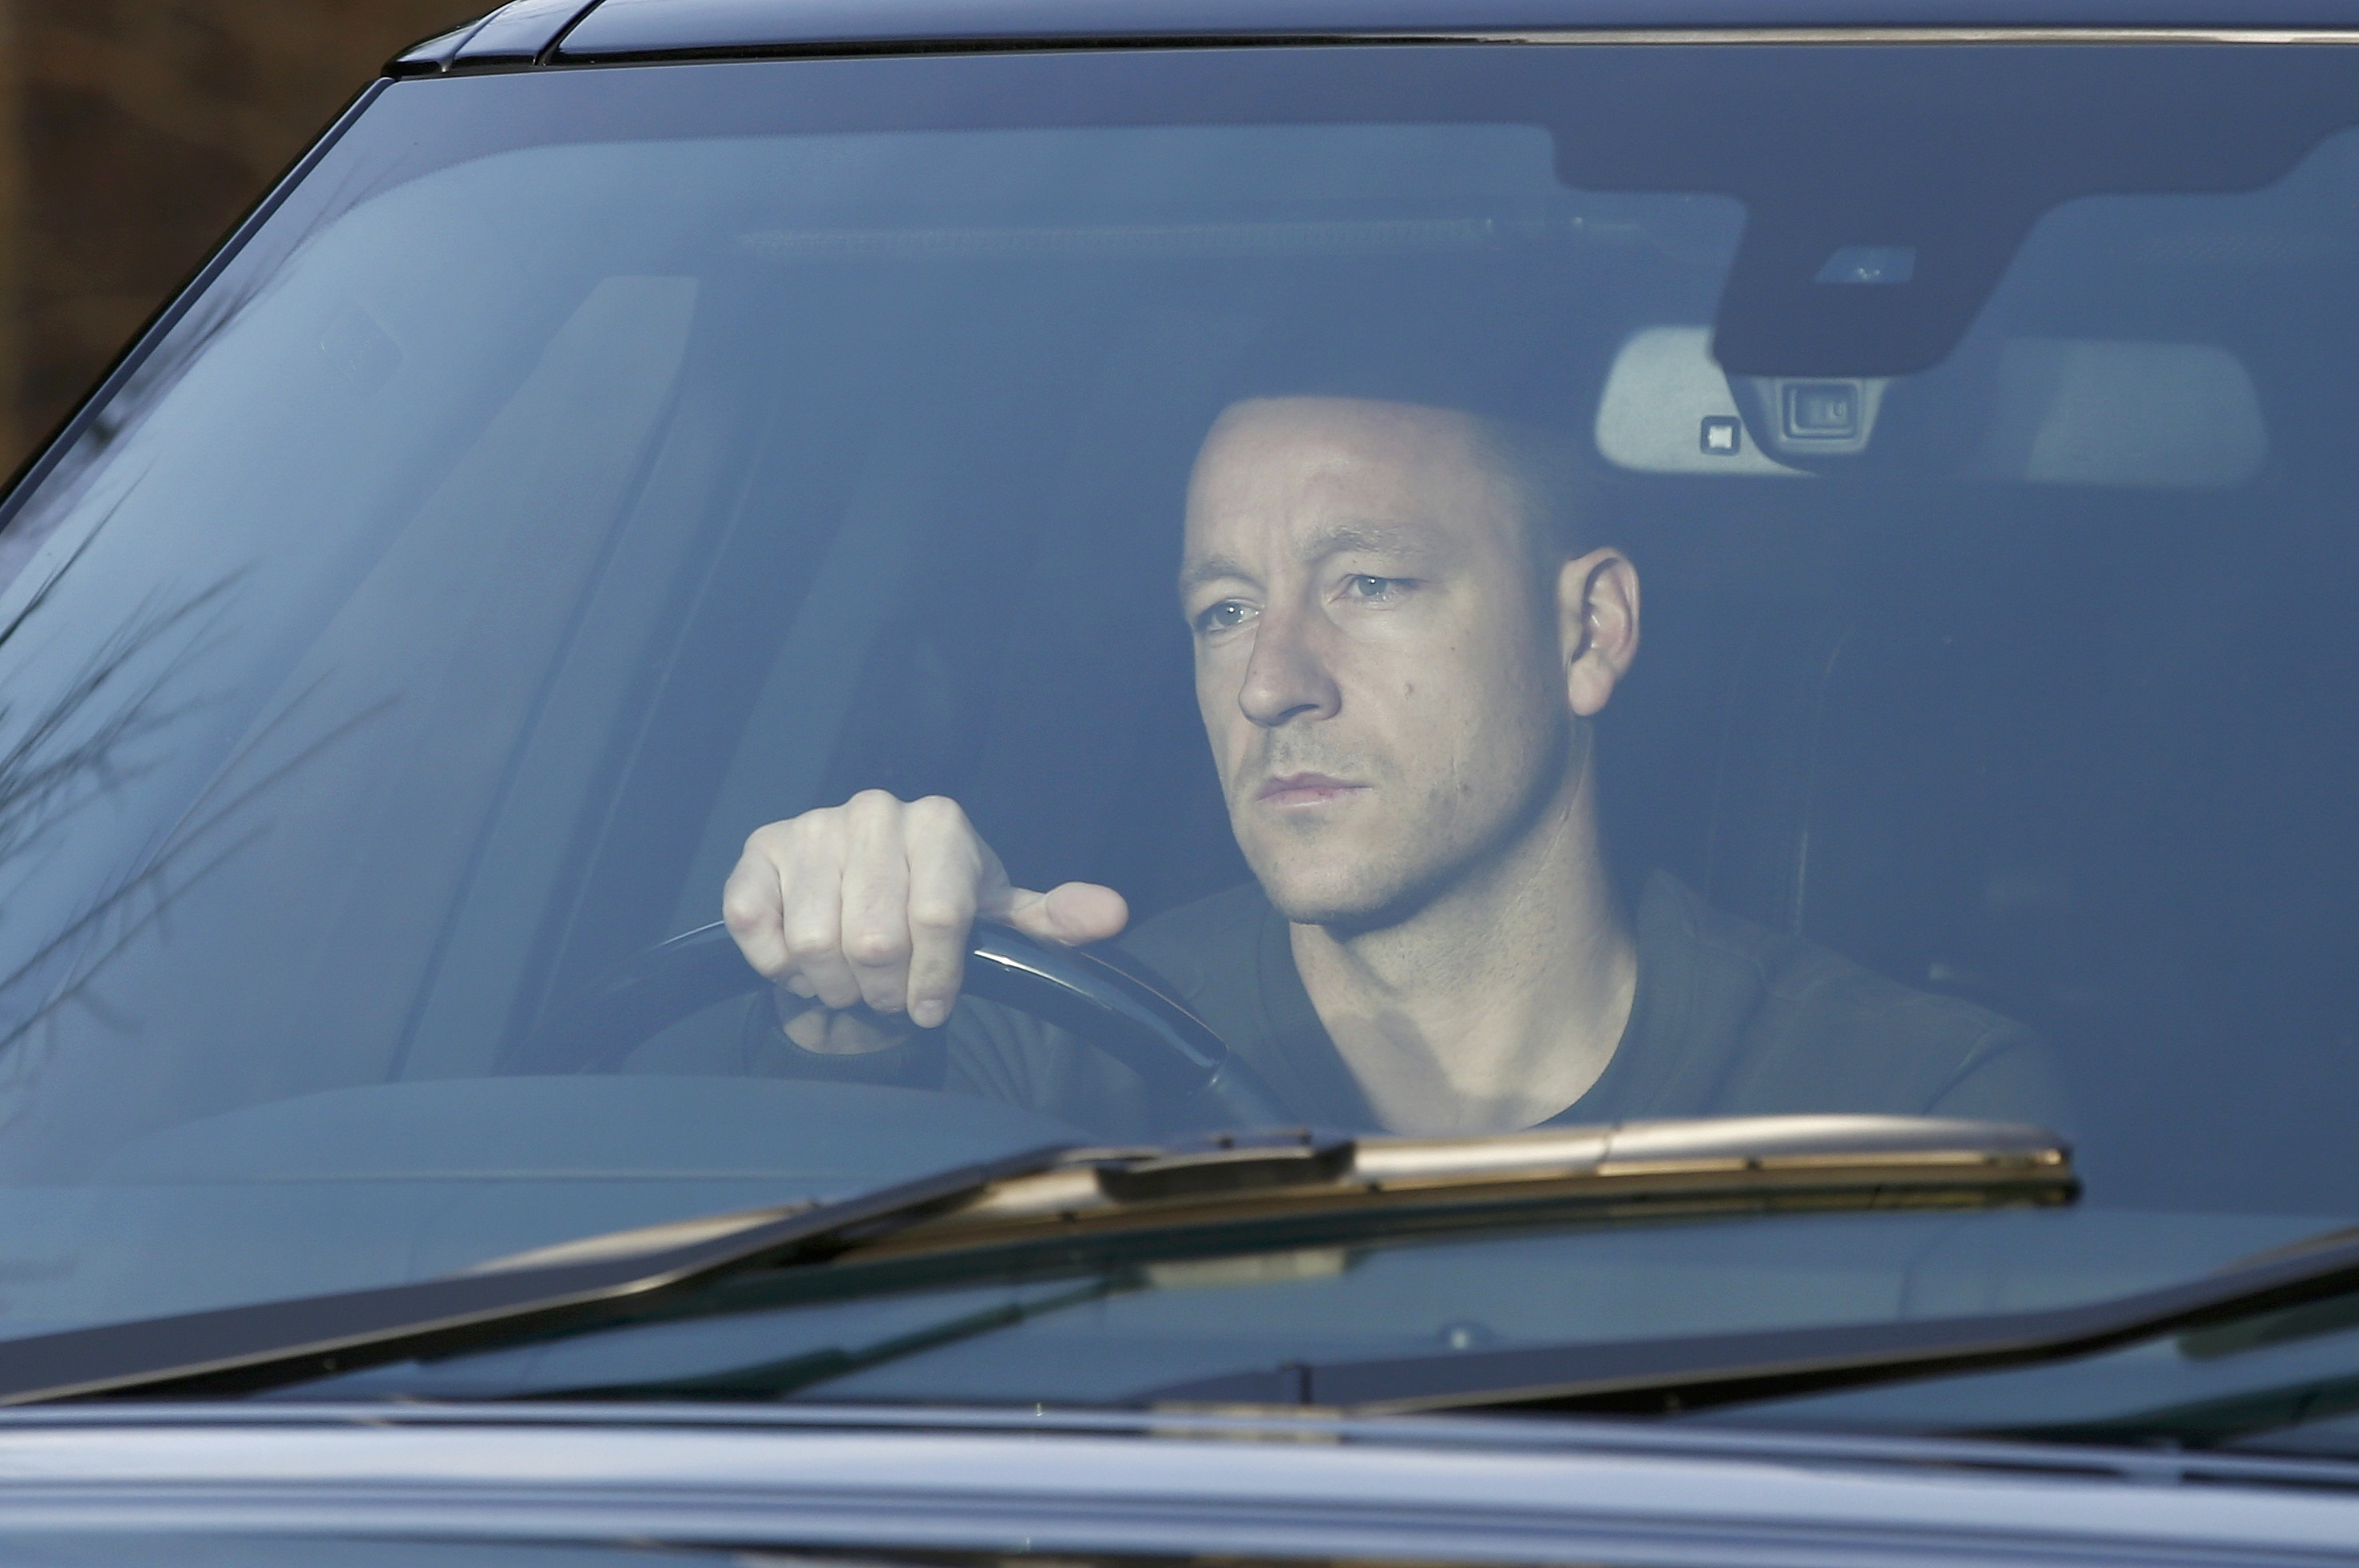 Chelsea's captain John Terry arrives for training the day after manager Jose Mourinho was sacked at the team's training facility in Cobham, southern England, December 18, 2015. Photo: Reuters